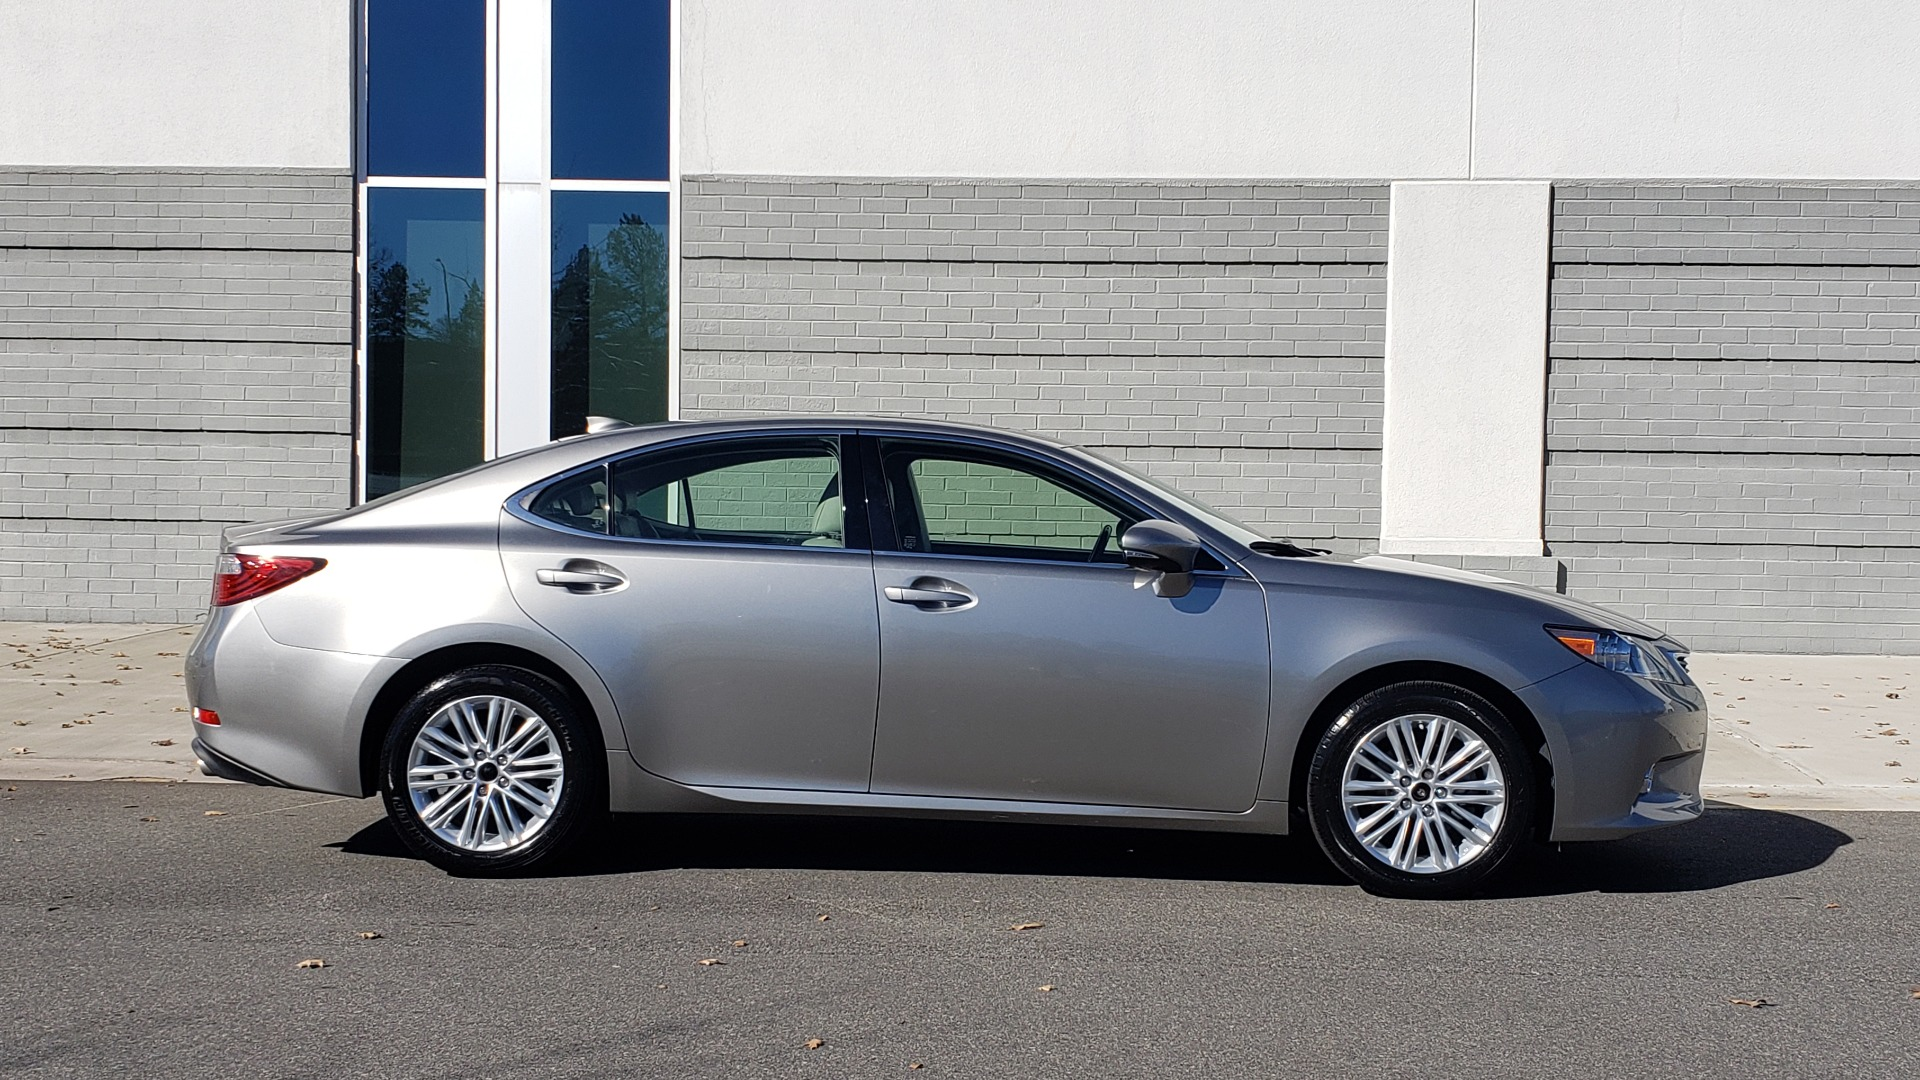 Used 2015 Lexus ES 350 LUXURY PKG / NAV / BSM / LCA / PARK ASSIST / REARVIEW for sale Sold at Formula Imports in Charlotte NC 28227 5